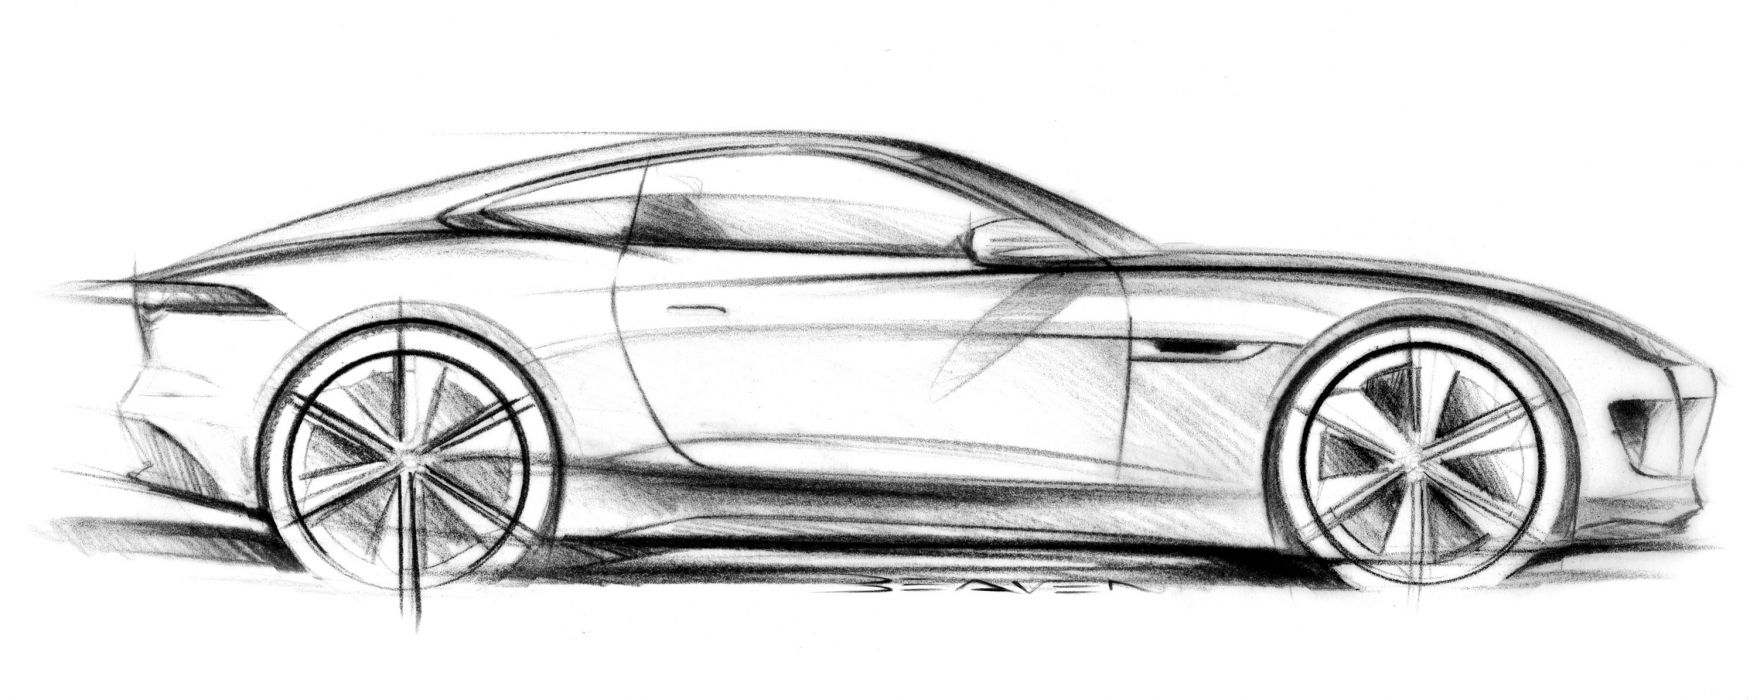 2011 Jaguar C-X16 concept supercar supercars drawing sketch pencil art q wallpaper